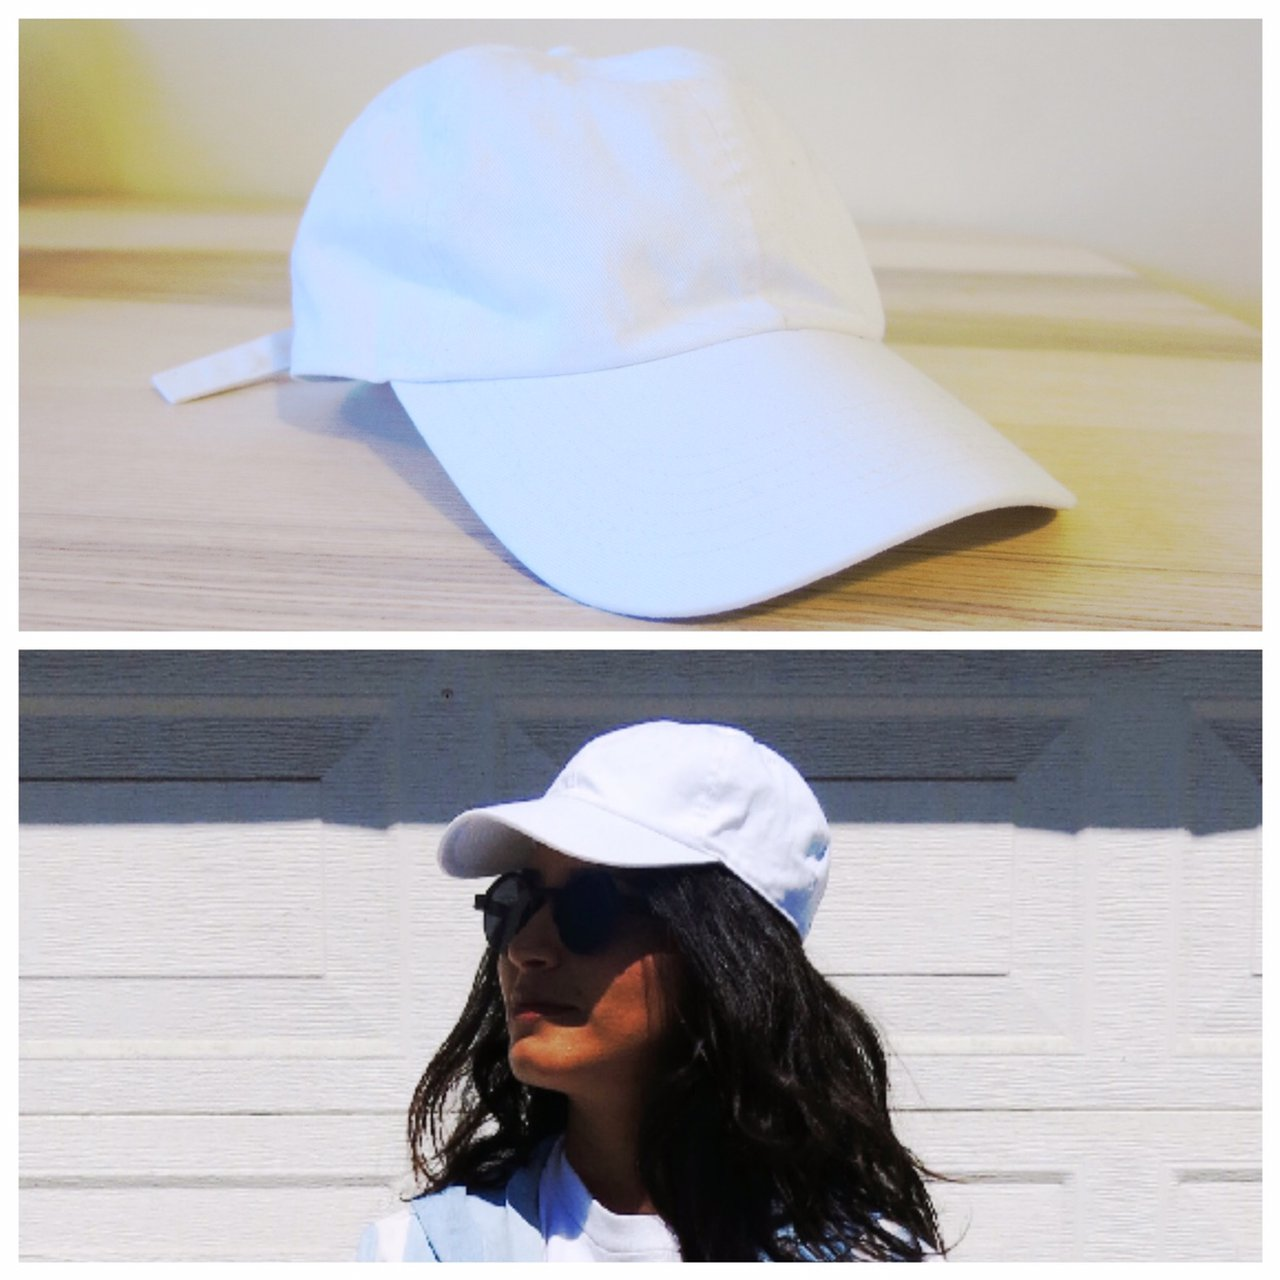 98232db9894 J. Galt Simple White Dad Hat Baseball Cap This hat is so of - Depop